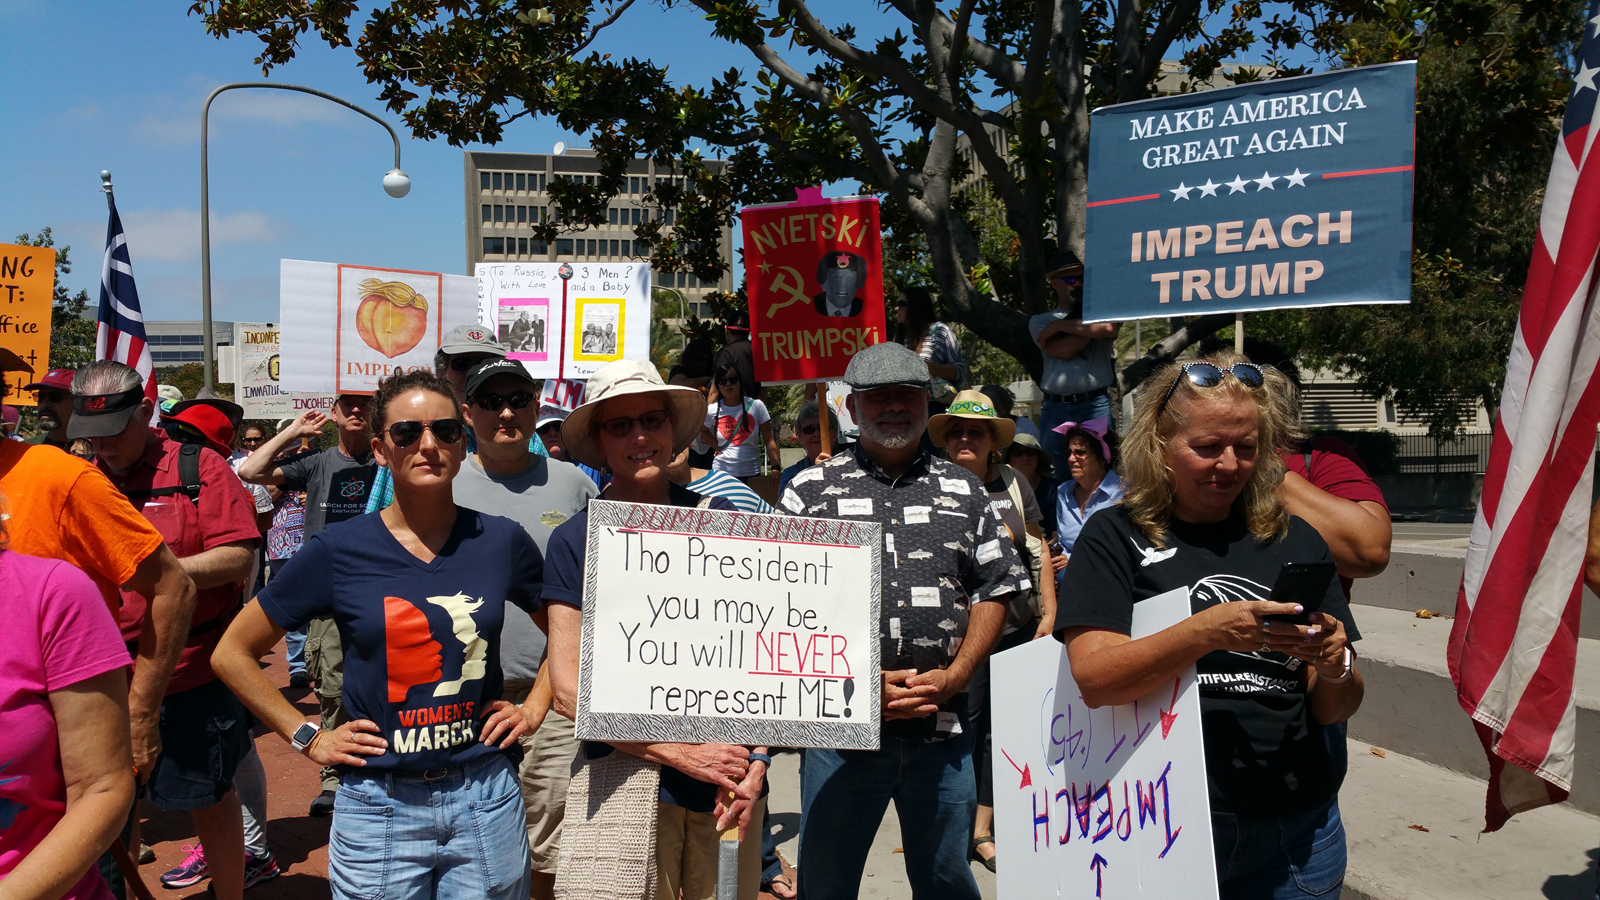 Thousands Gather in Downtown Los Angeles Calling for Impeachment of President Trump